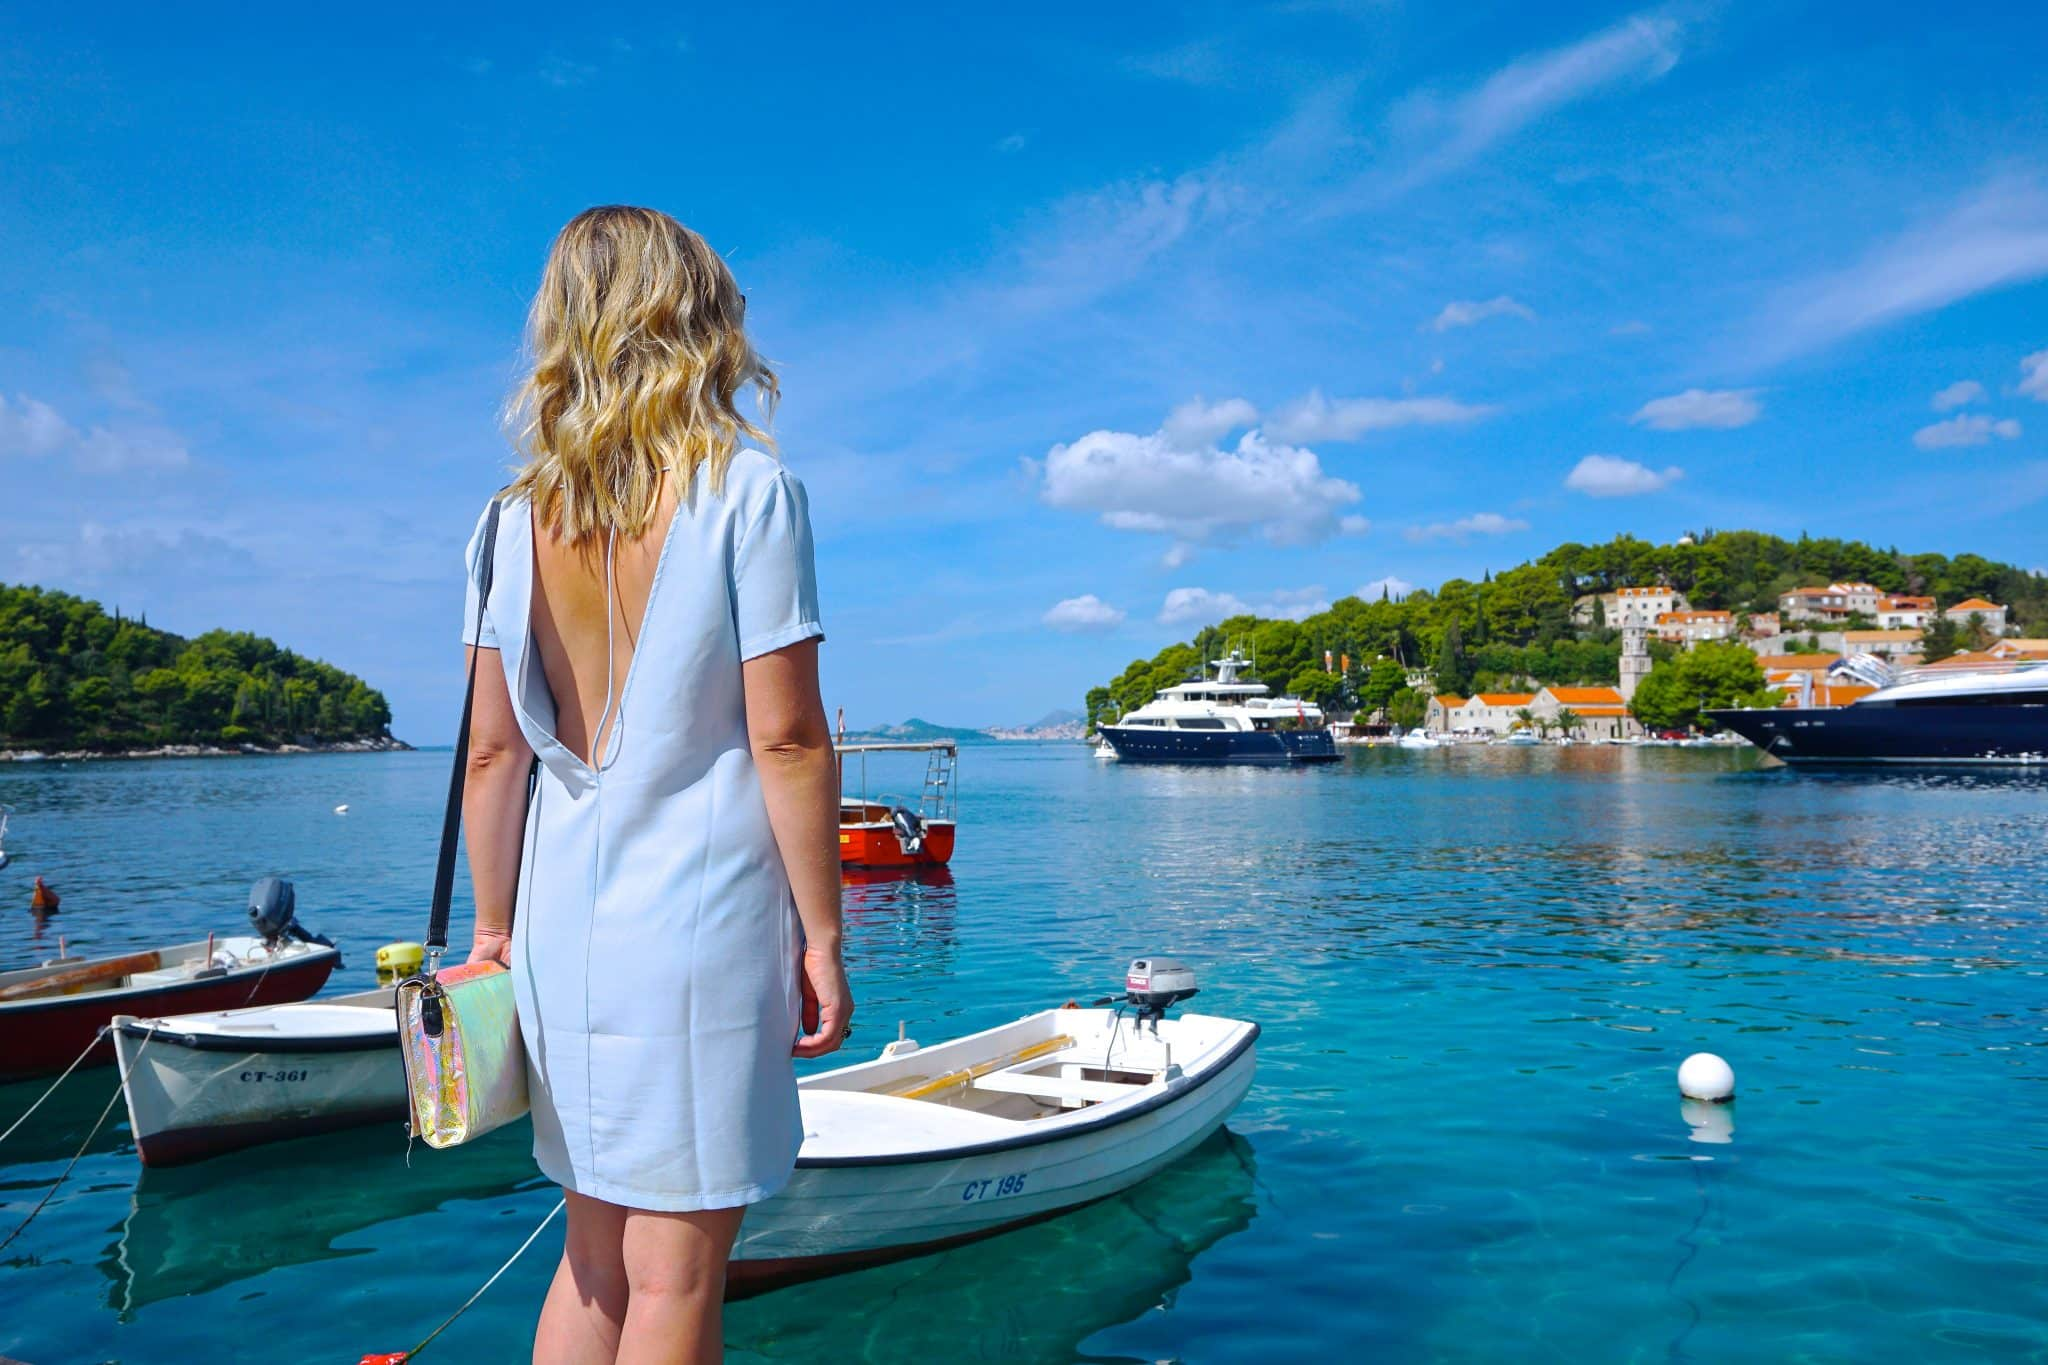 Woman standing on the dock in Cavtat, Croatia, surrounding by the Adriatic sea, small fishing boats, and green forests. Cavtat is an ideal day trip from Dubrovnik.